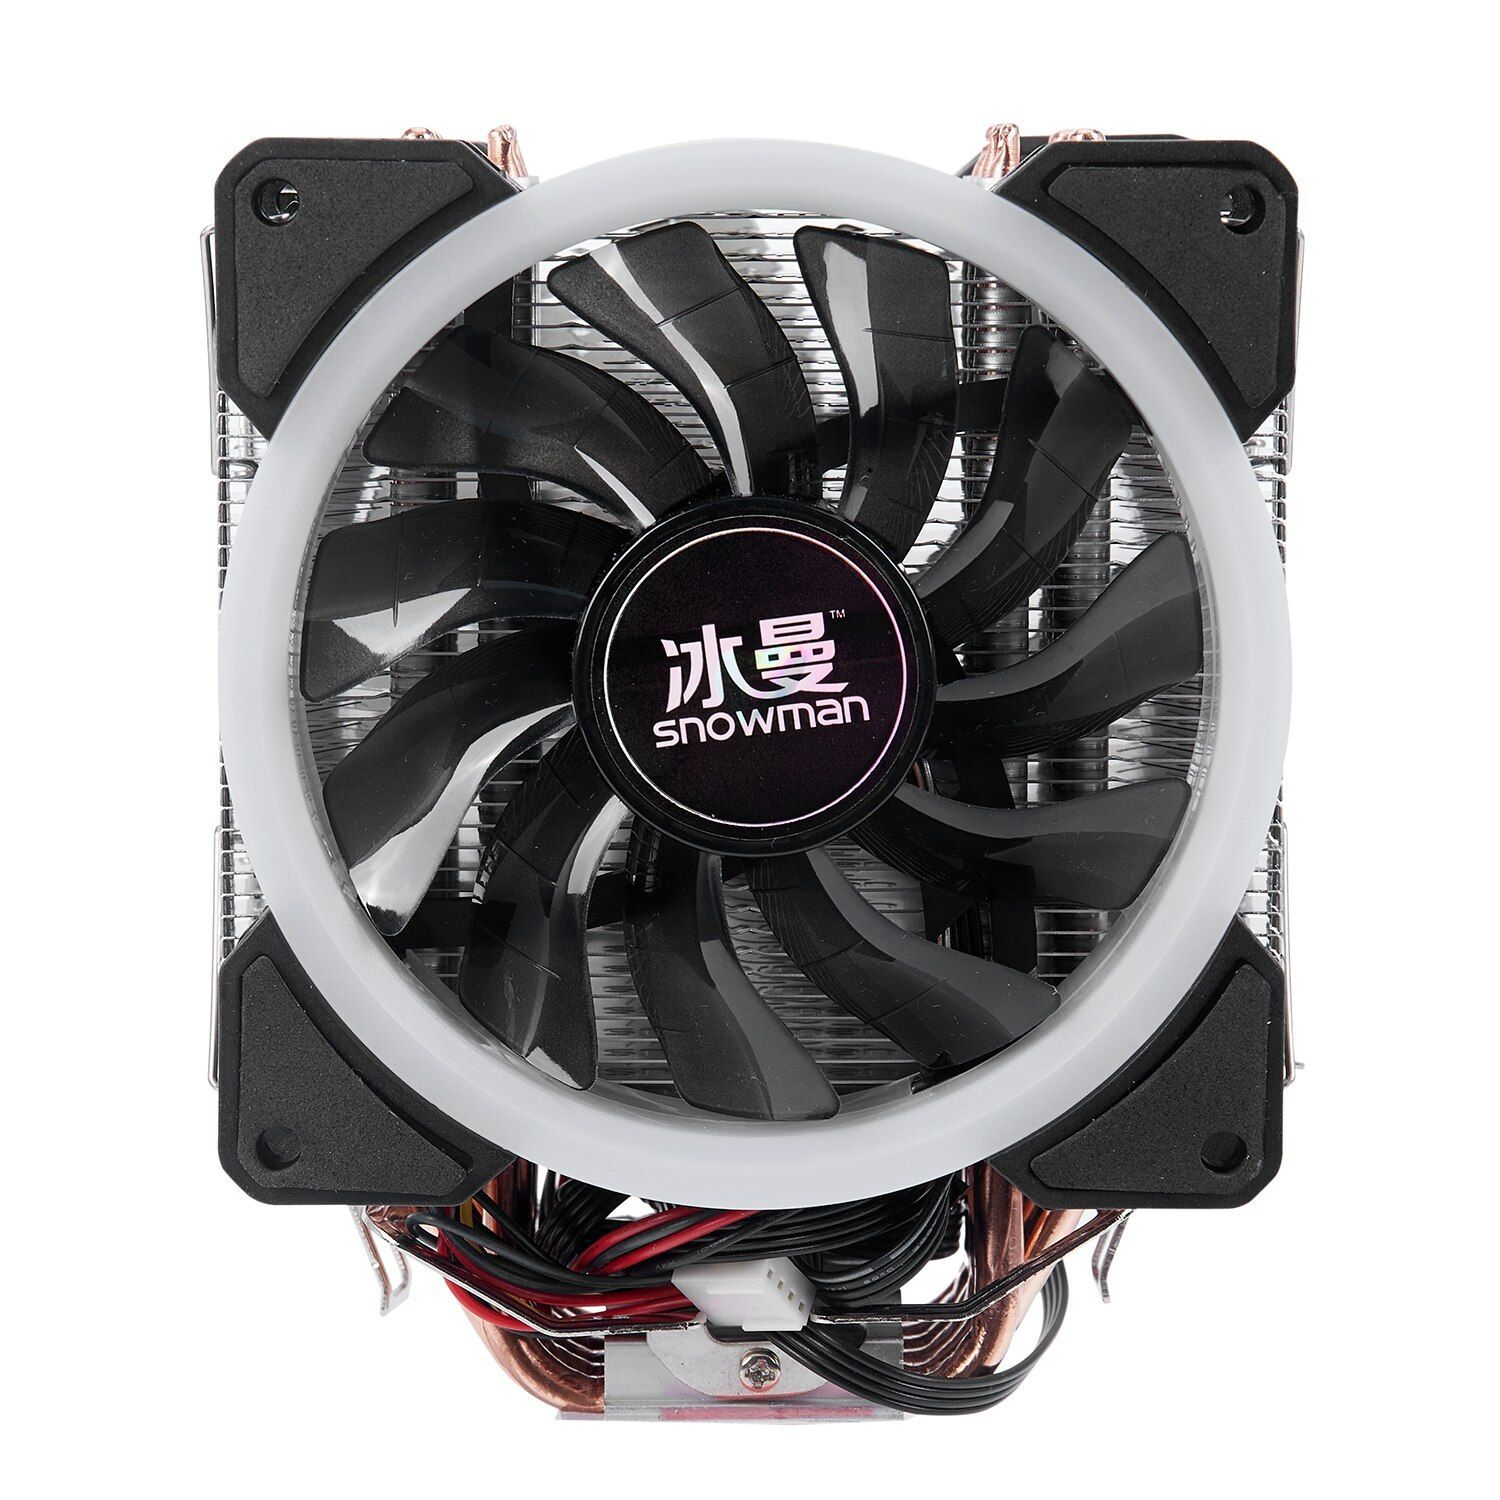 Snowman 4pin Cpu Cooler 6 Heatpipe Rgb Led Double Fans